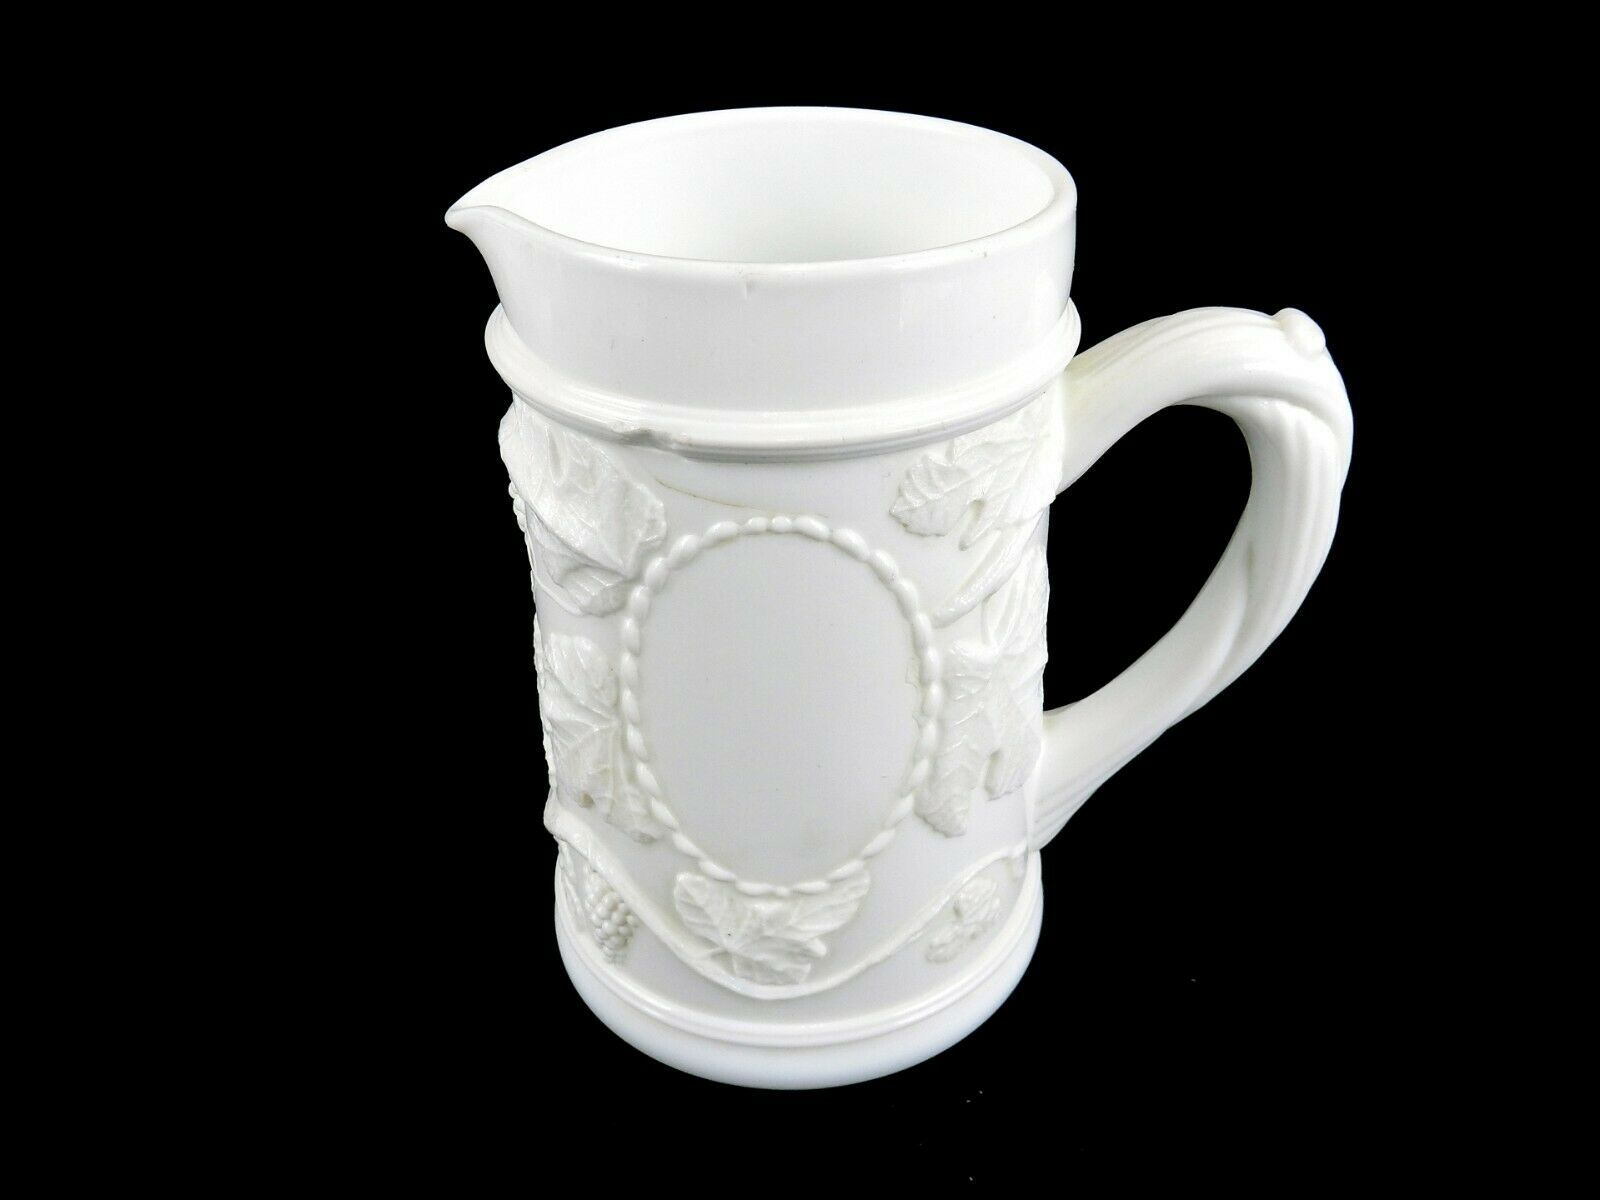 Primary image for Fenton Milk Glass Pitcher, Grapes & Leaves Bas Relief Pattern, Vine Handle